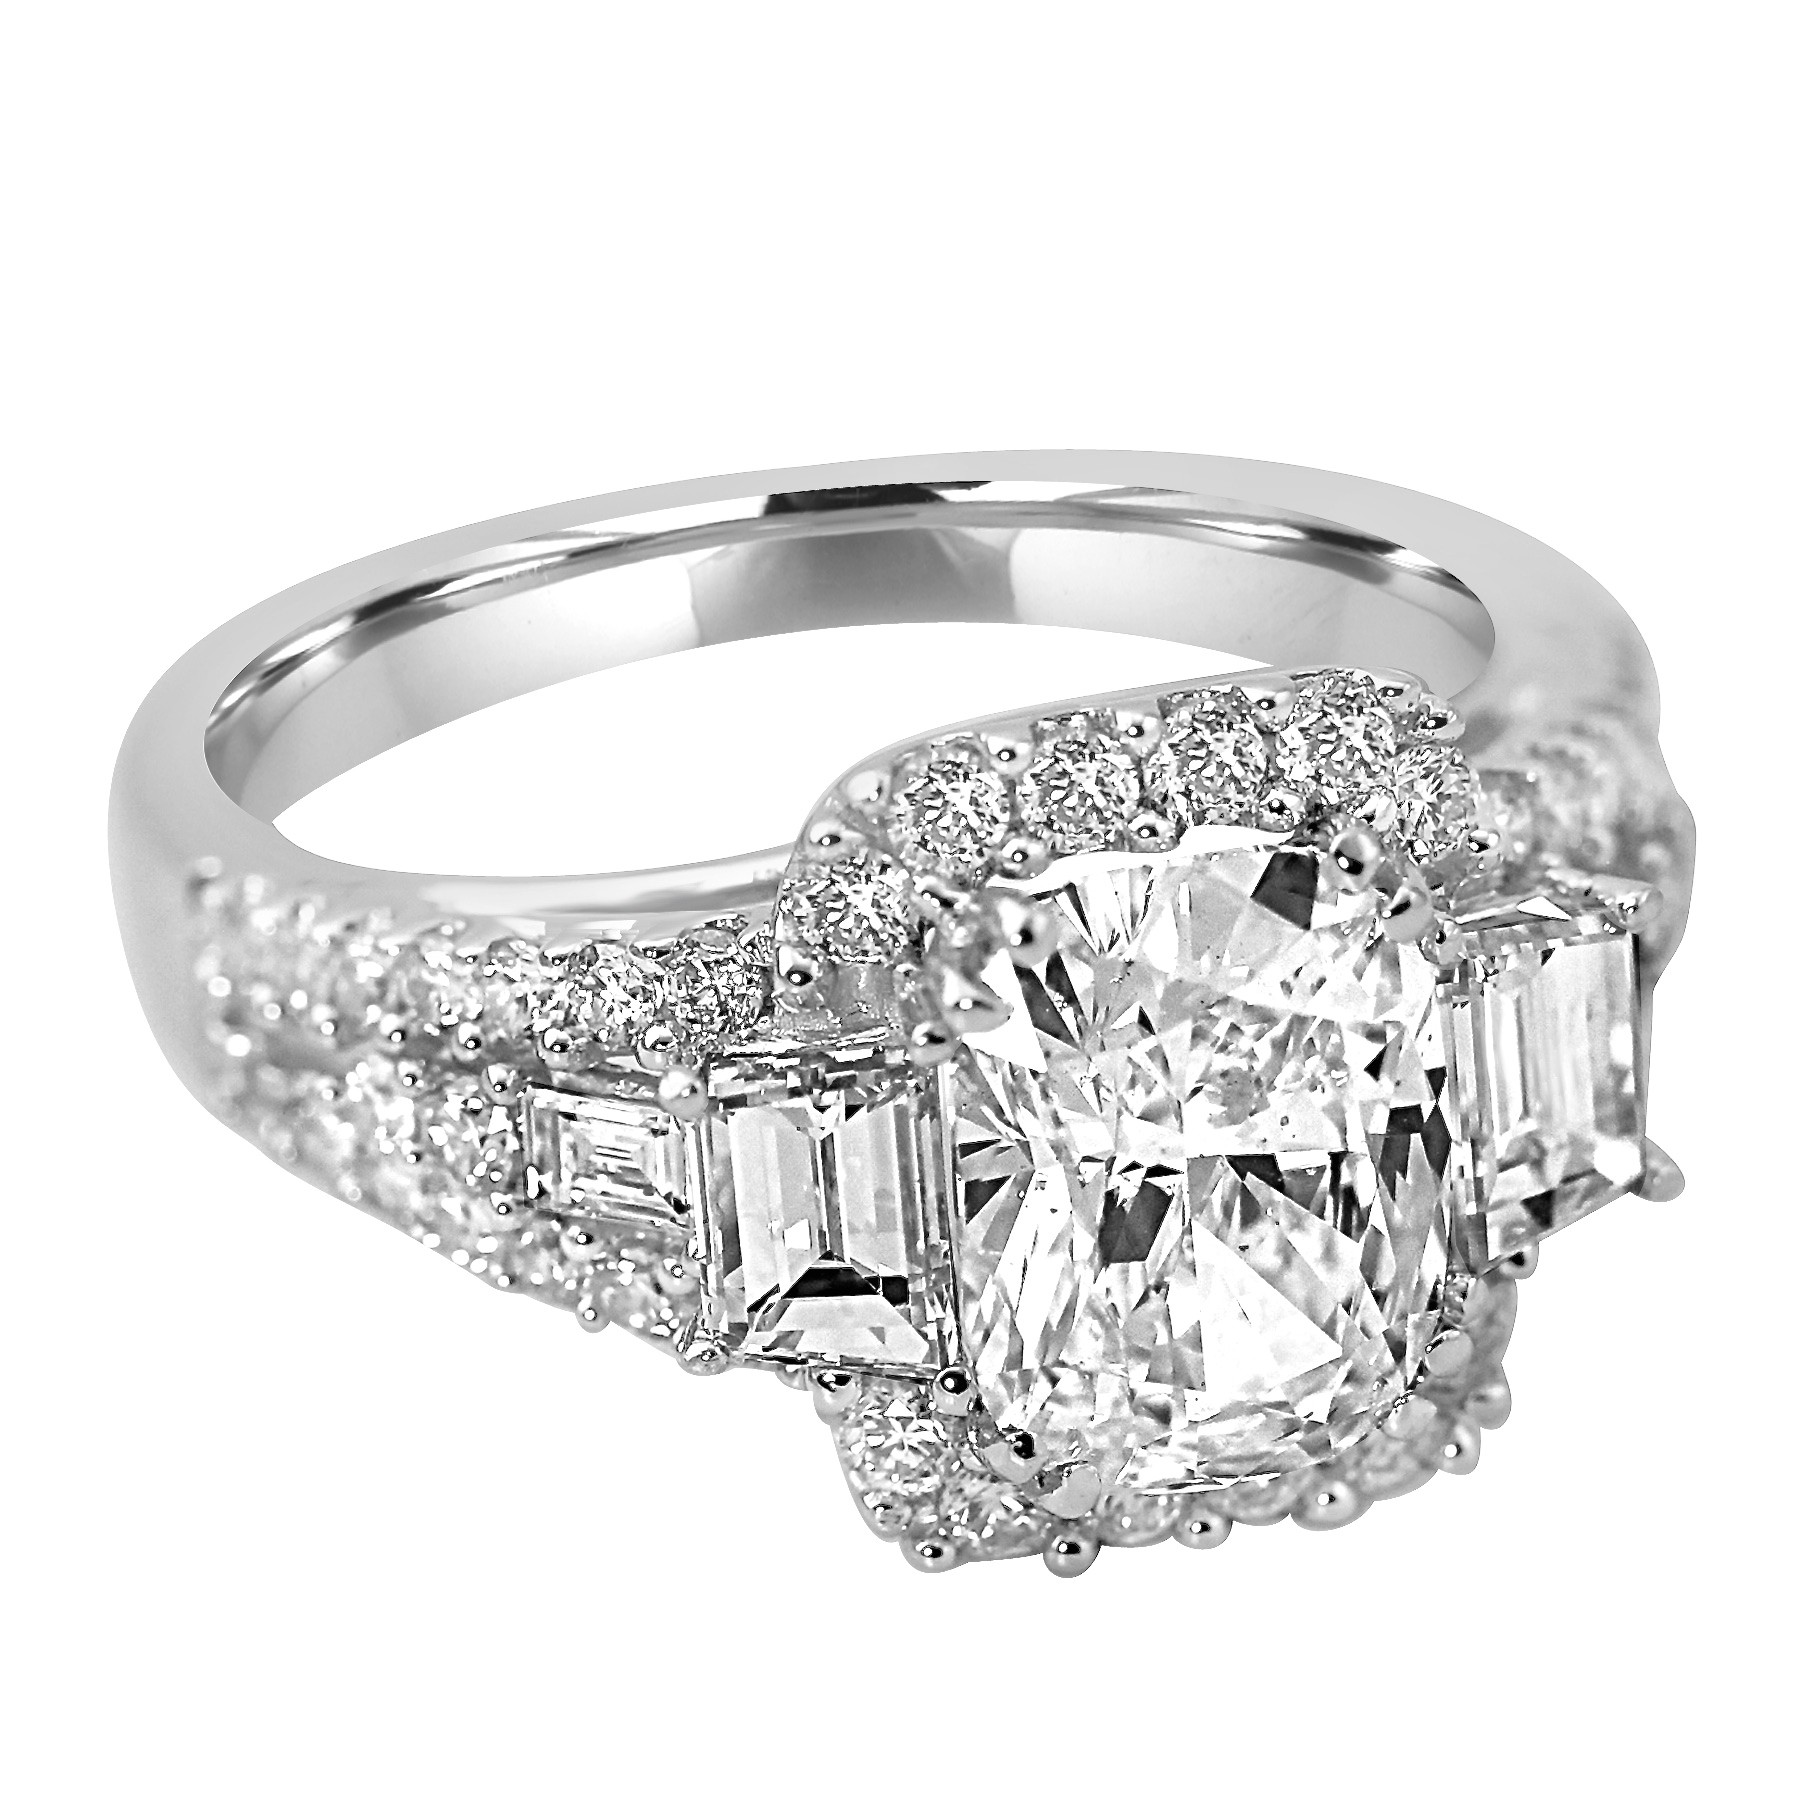 jewelers sholdt setting ring engagement diamond rings st greenwich baguette